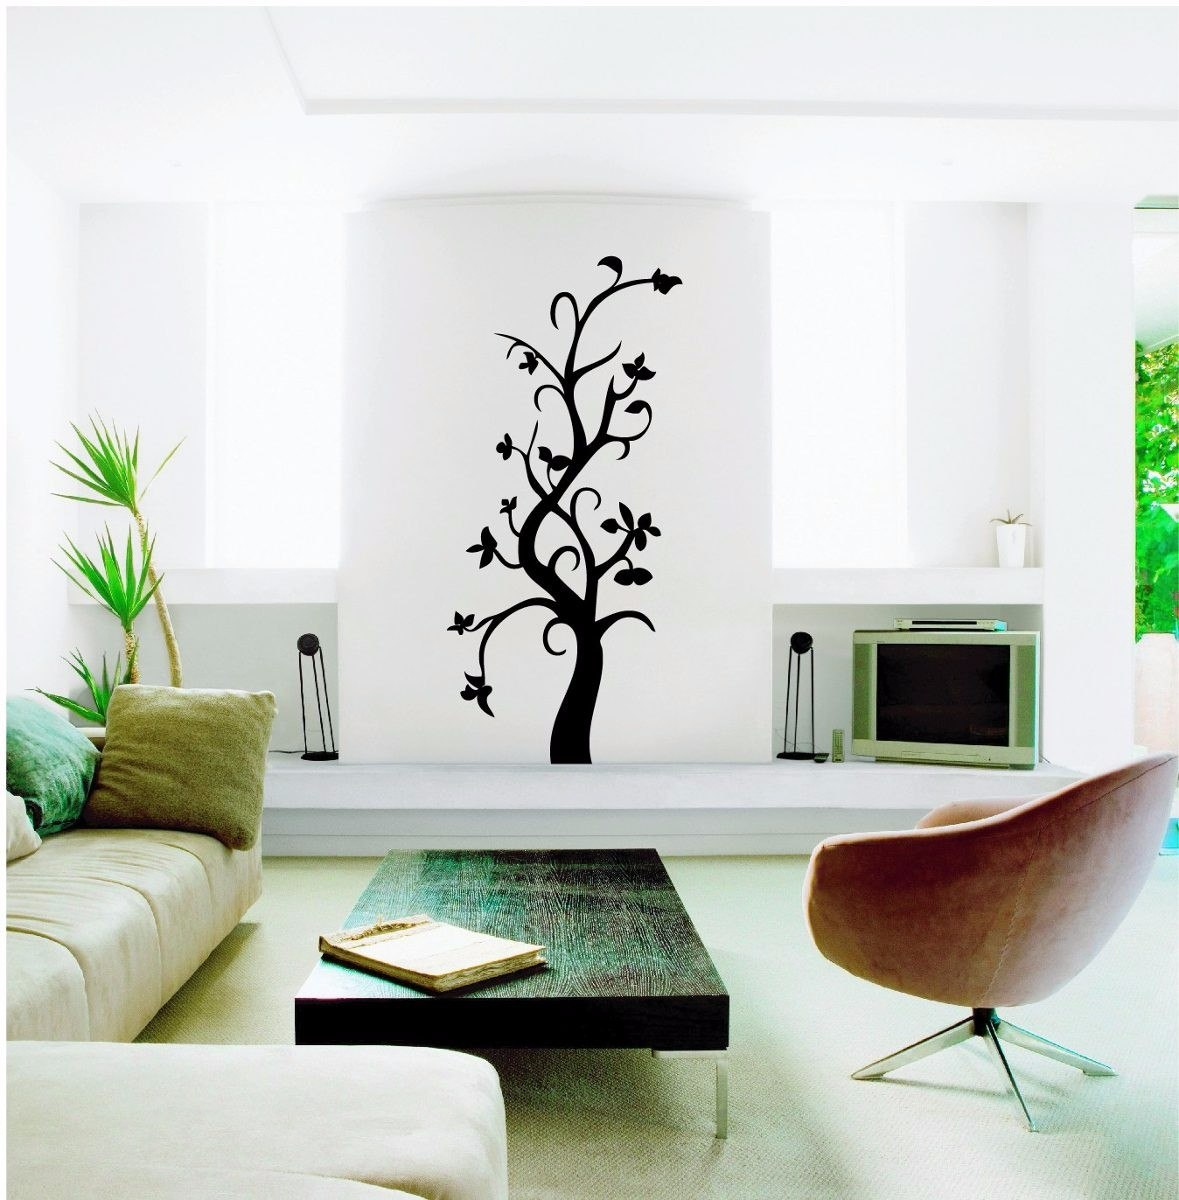 vinilo decorativo dise o arbol decoracion pared floral